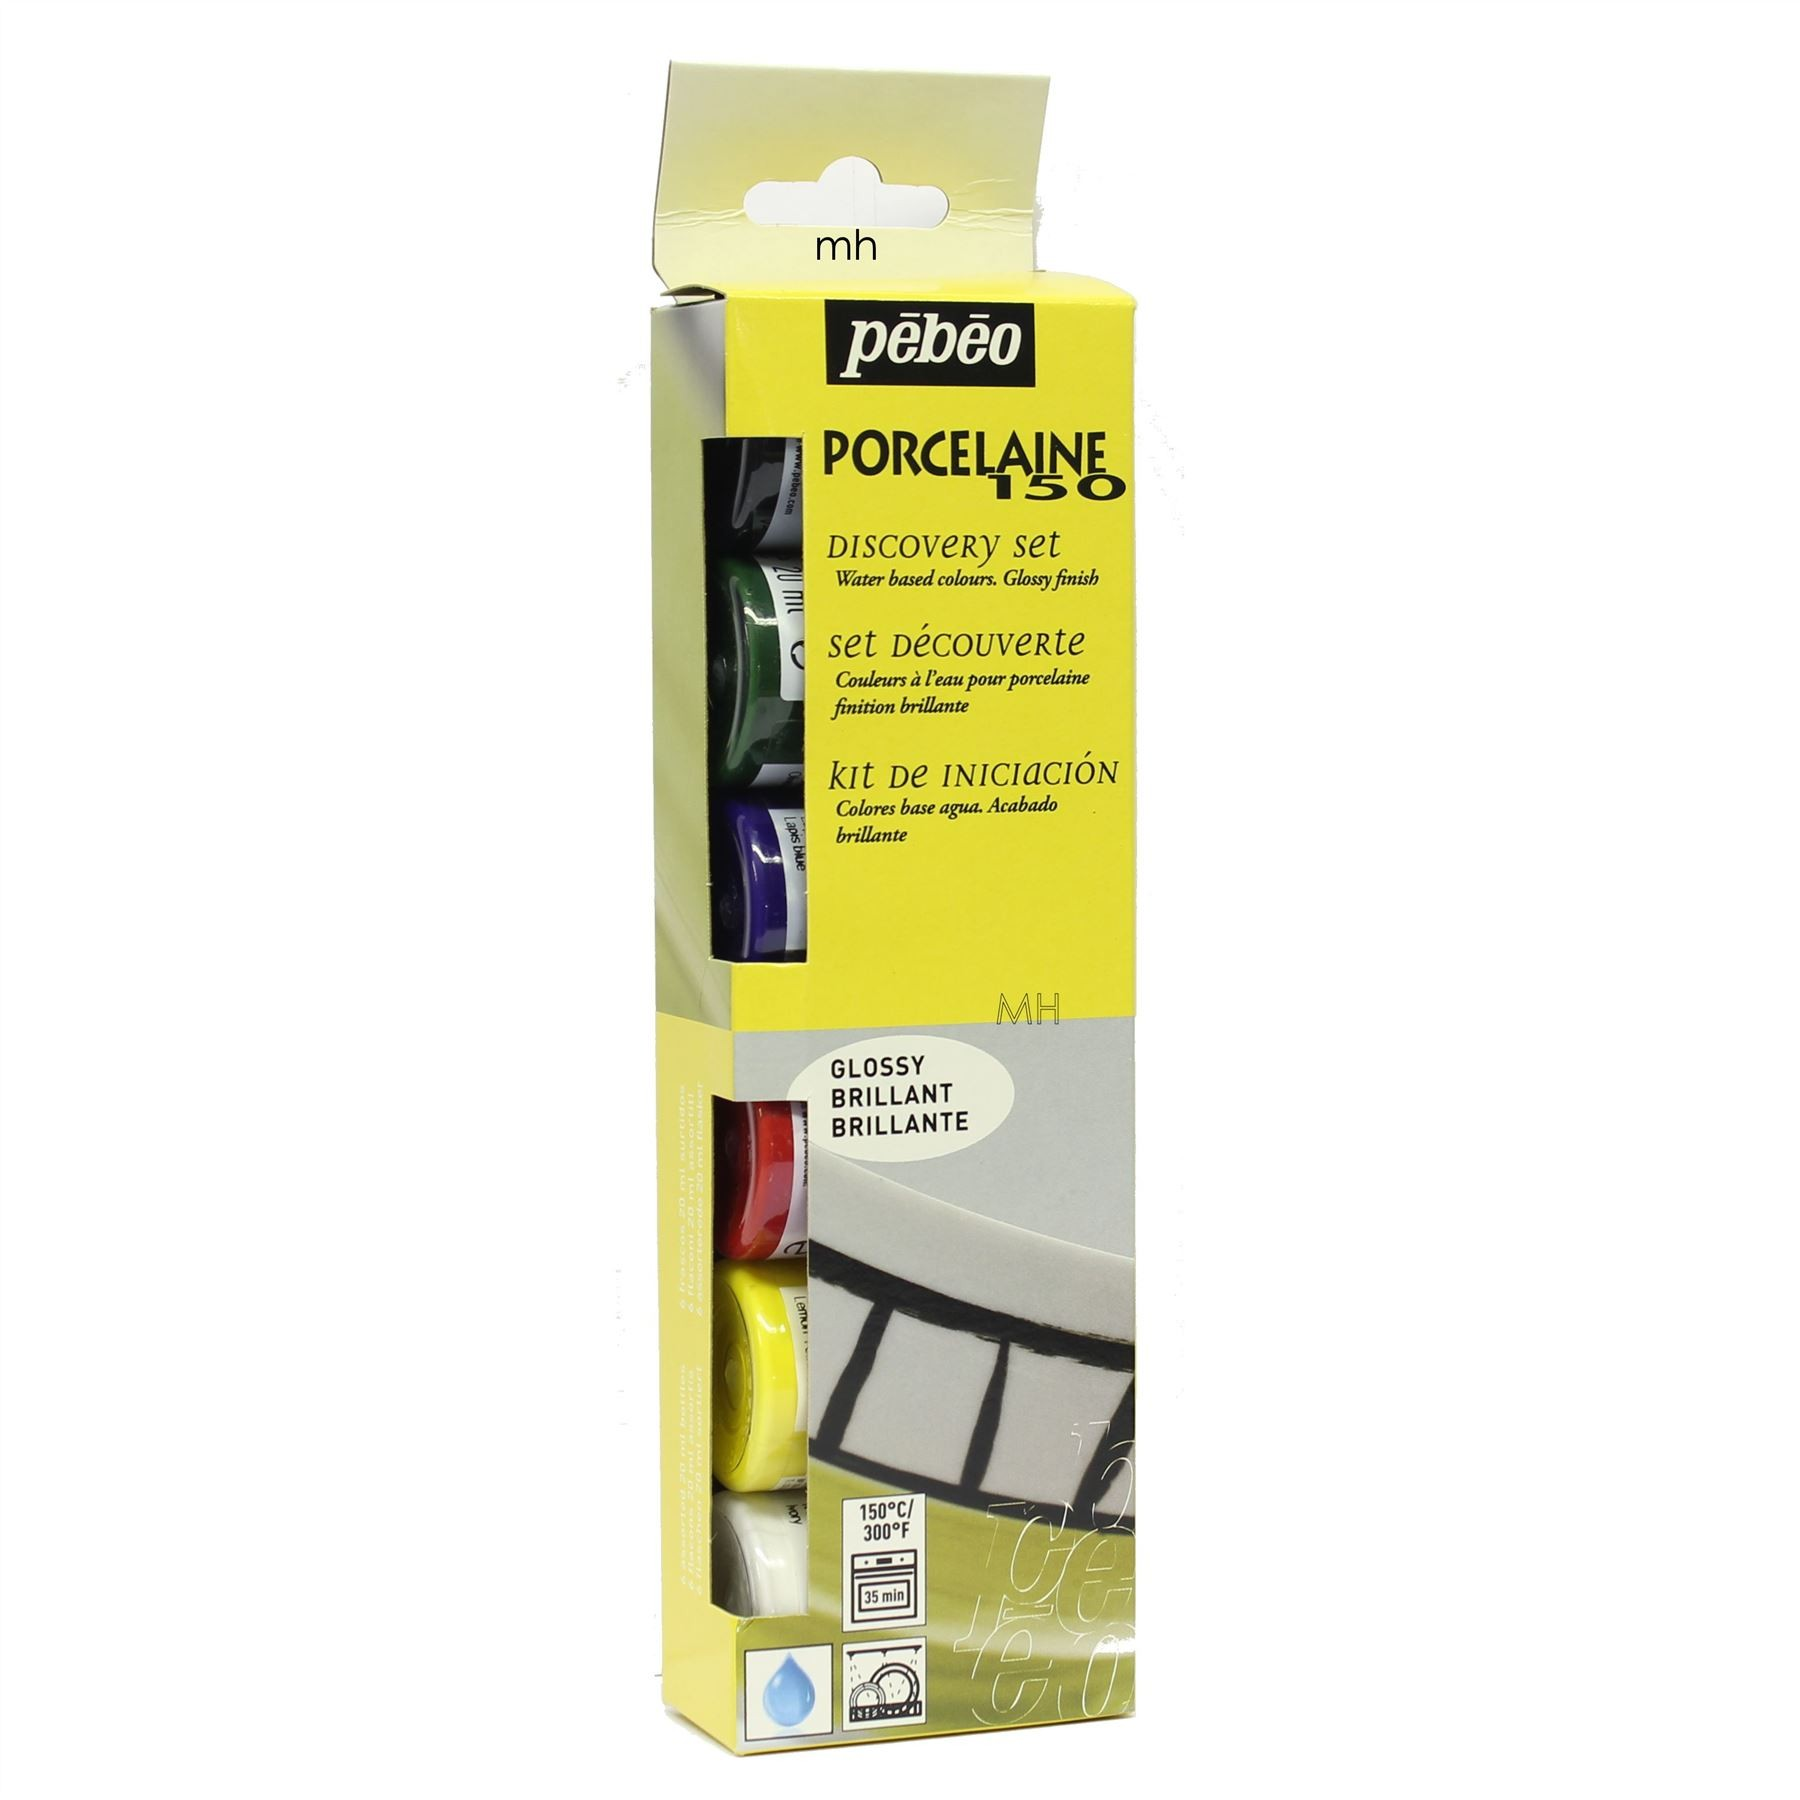 Pebeo Discovery Set 6x20ml Porcelaine 150 Painting on Porcelain